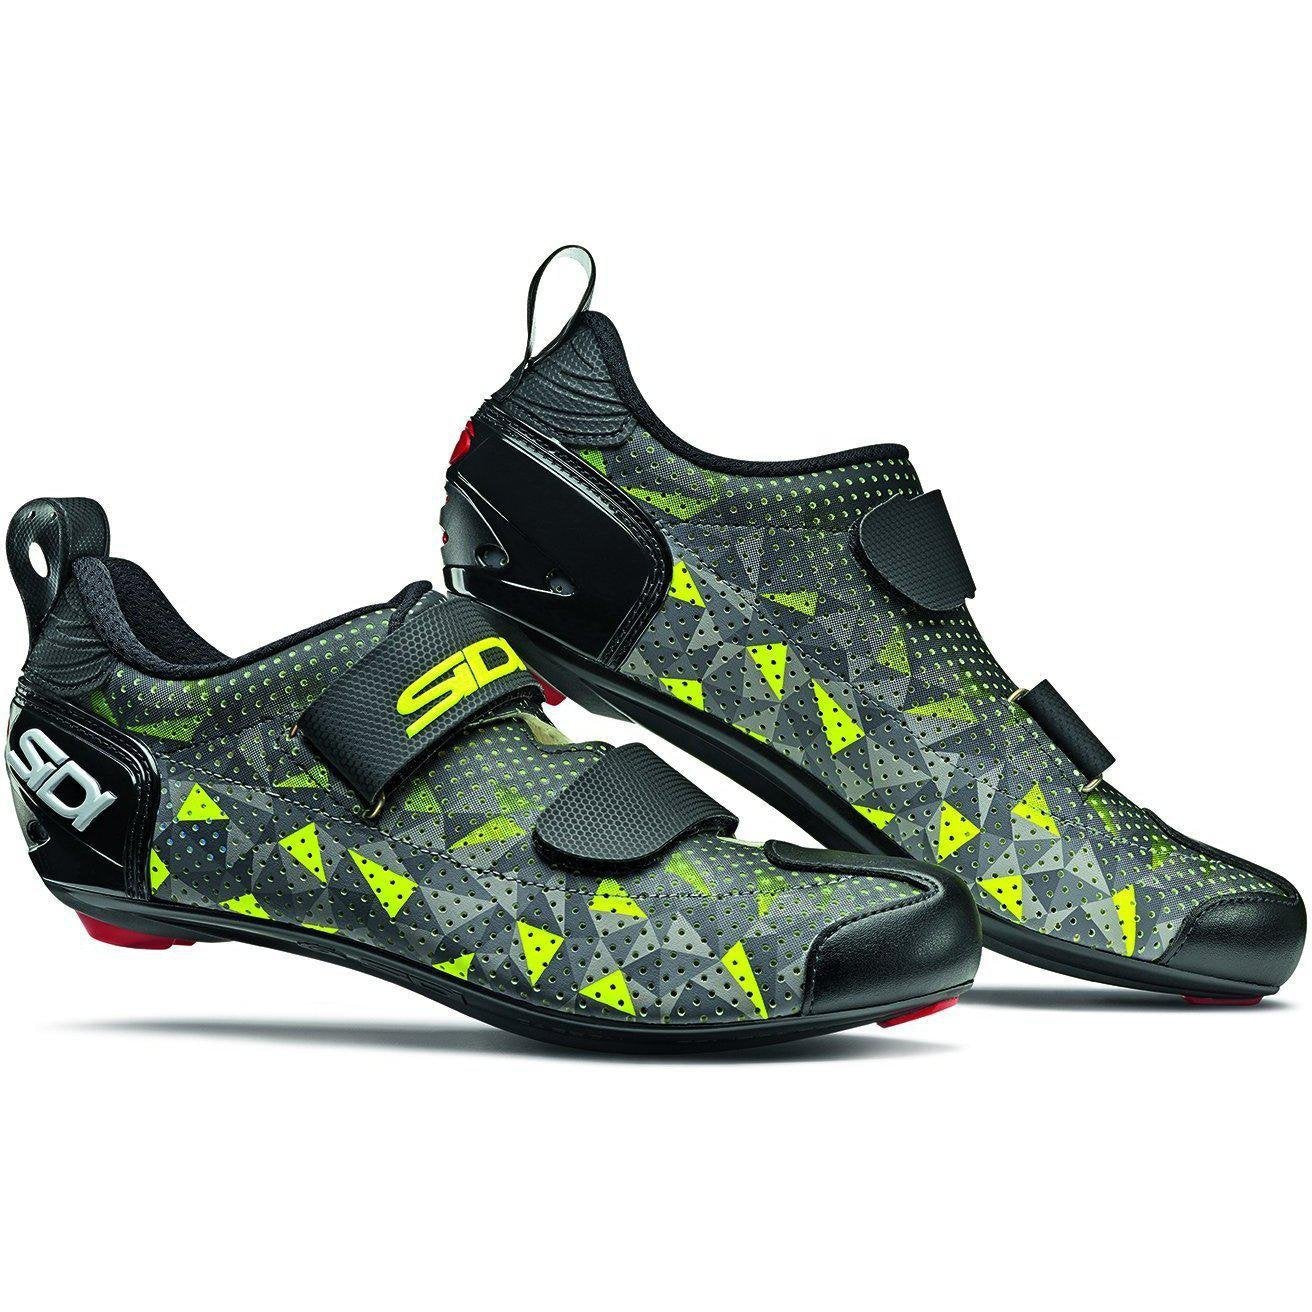 SIDI-Sidi T-5 Air Triathlon Shoes-38-Grey/Yellow/Black-SIT5AIRGRGINE38-saddleback-elite-performance-cycling